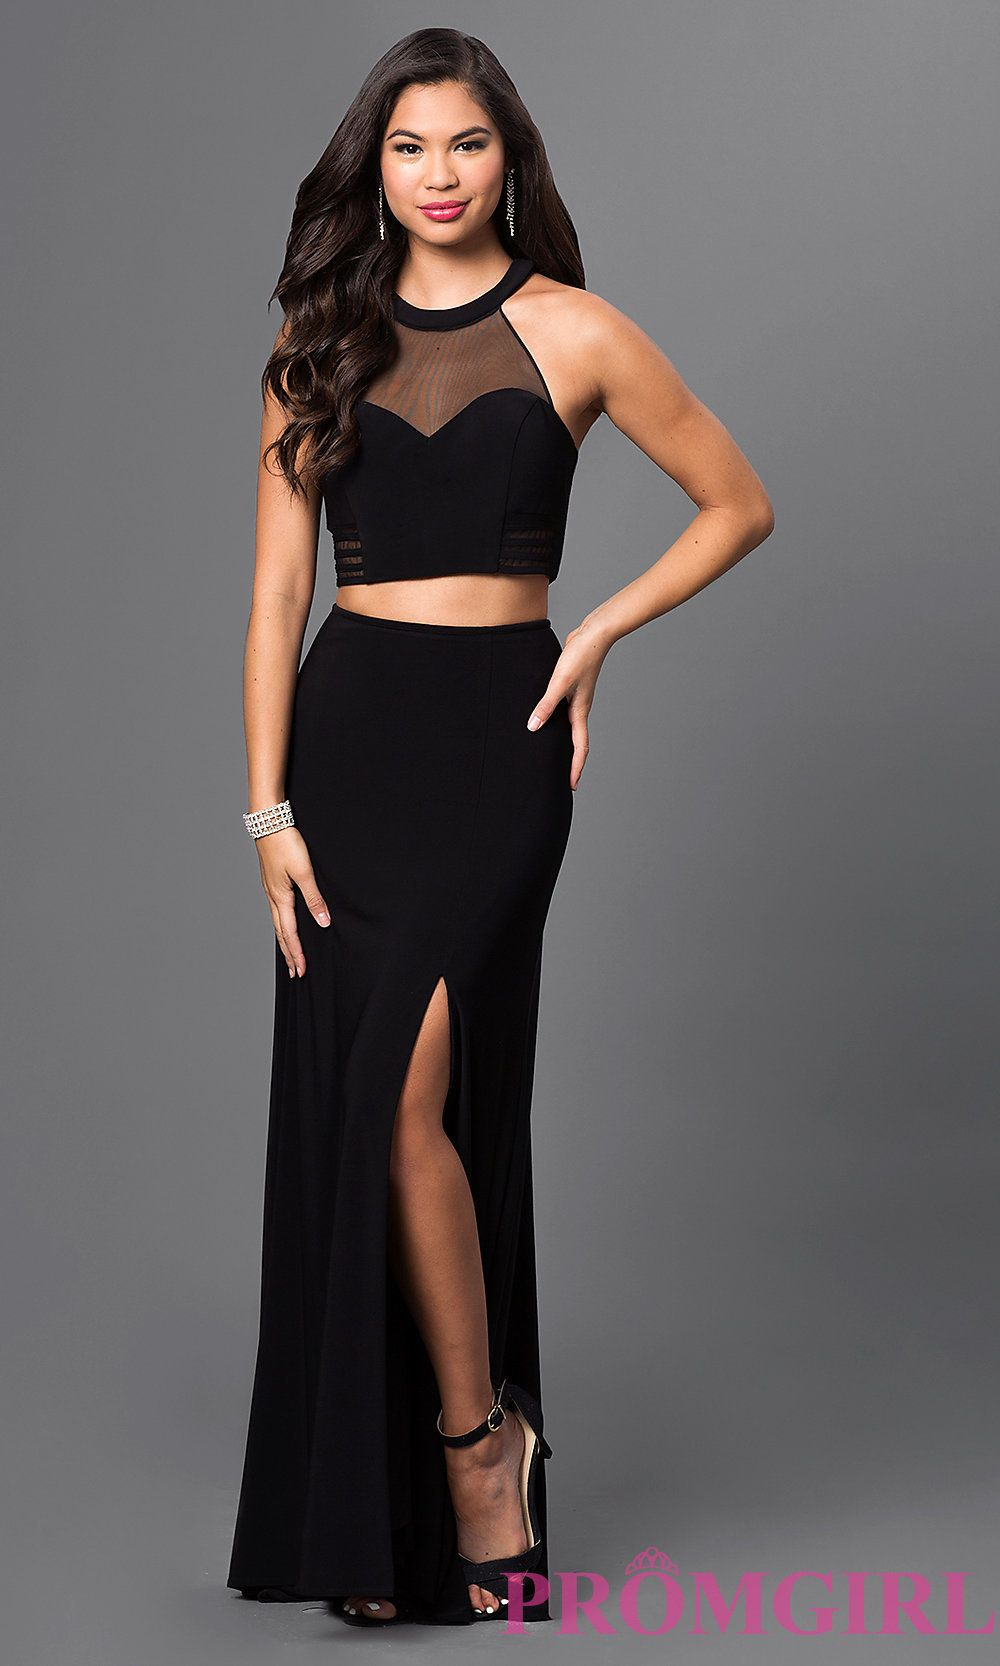 ad6e98c10f9 Image of long black two piece dress with sweetheart illusion top bra cups  racerback side cut outs and long jersey skirt with side slits. Front Image